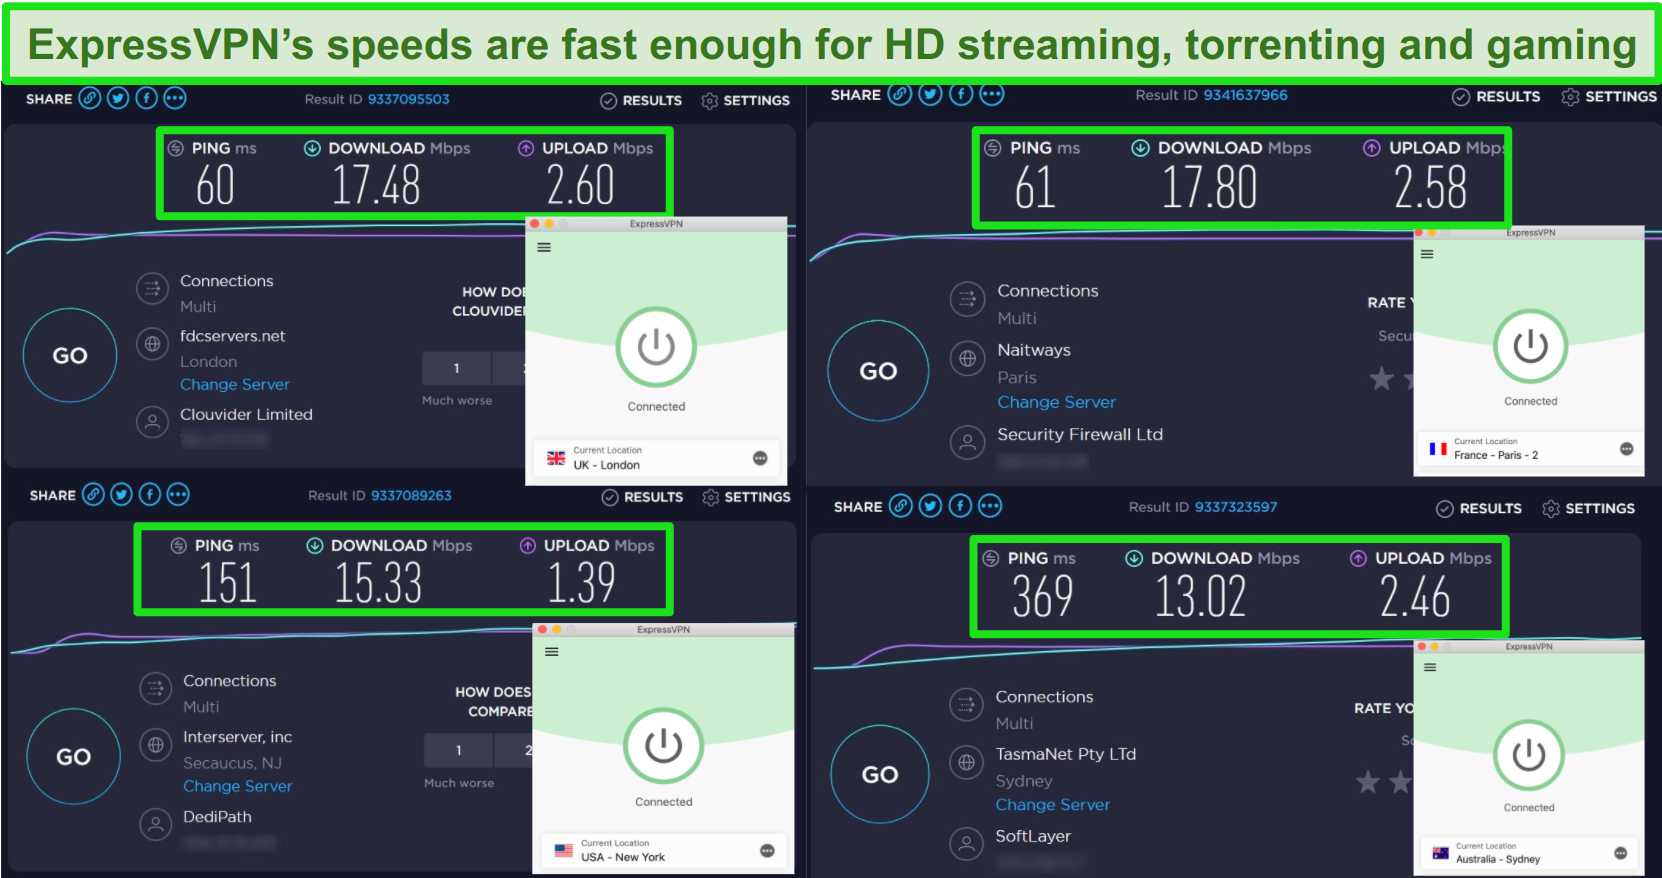 Screenshot of ExpressVPN's speed test results when connected to servers in the United Kingdom, France, United States, and Australia